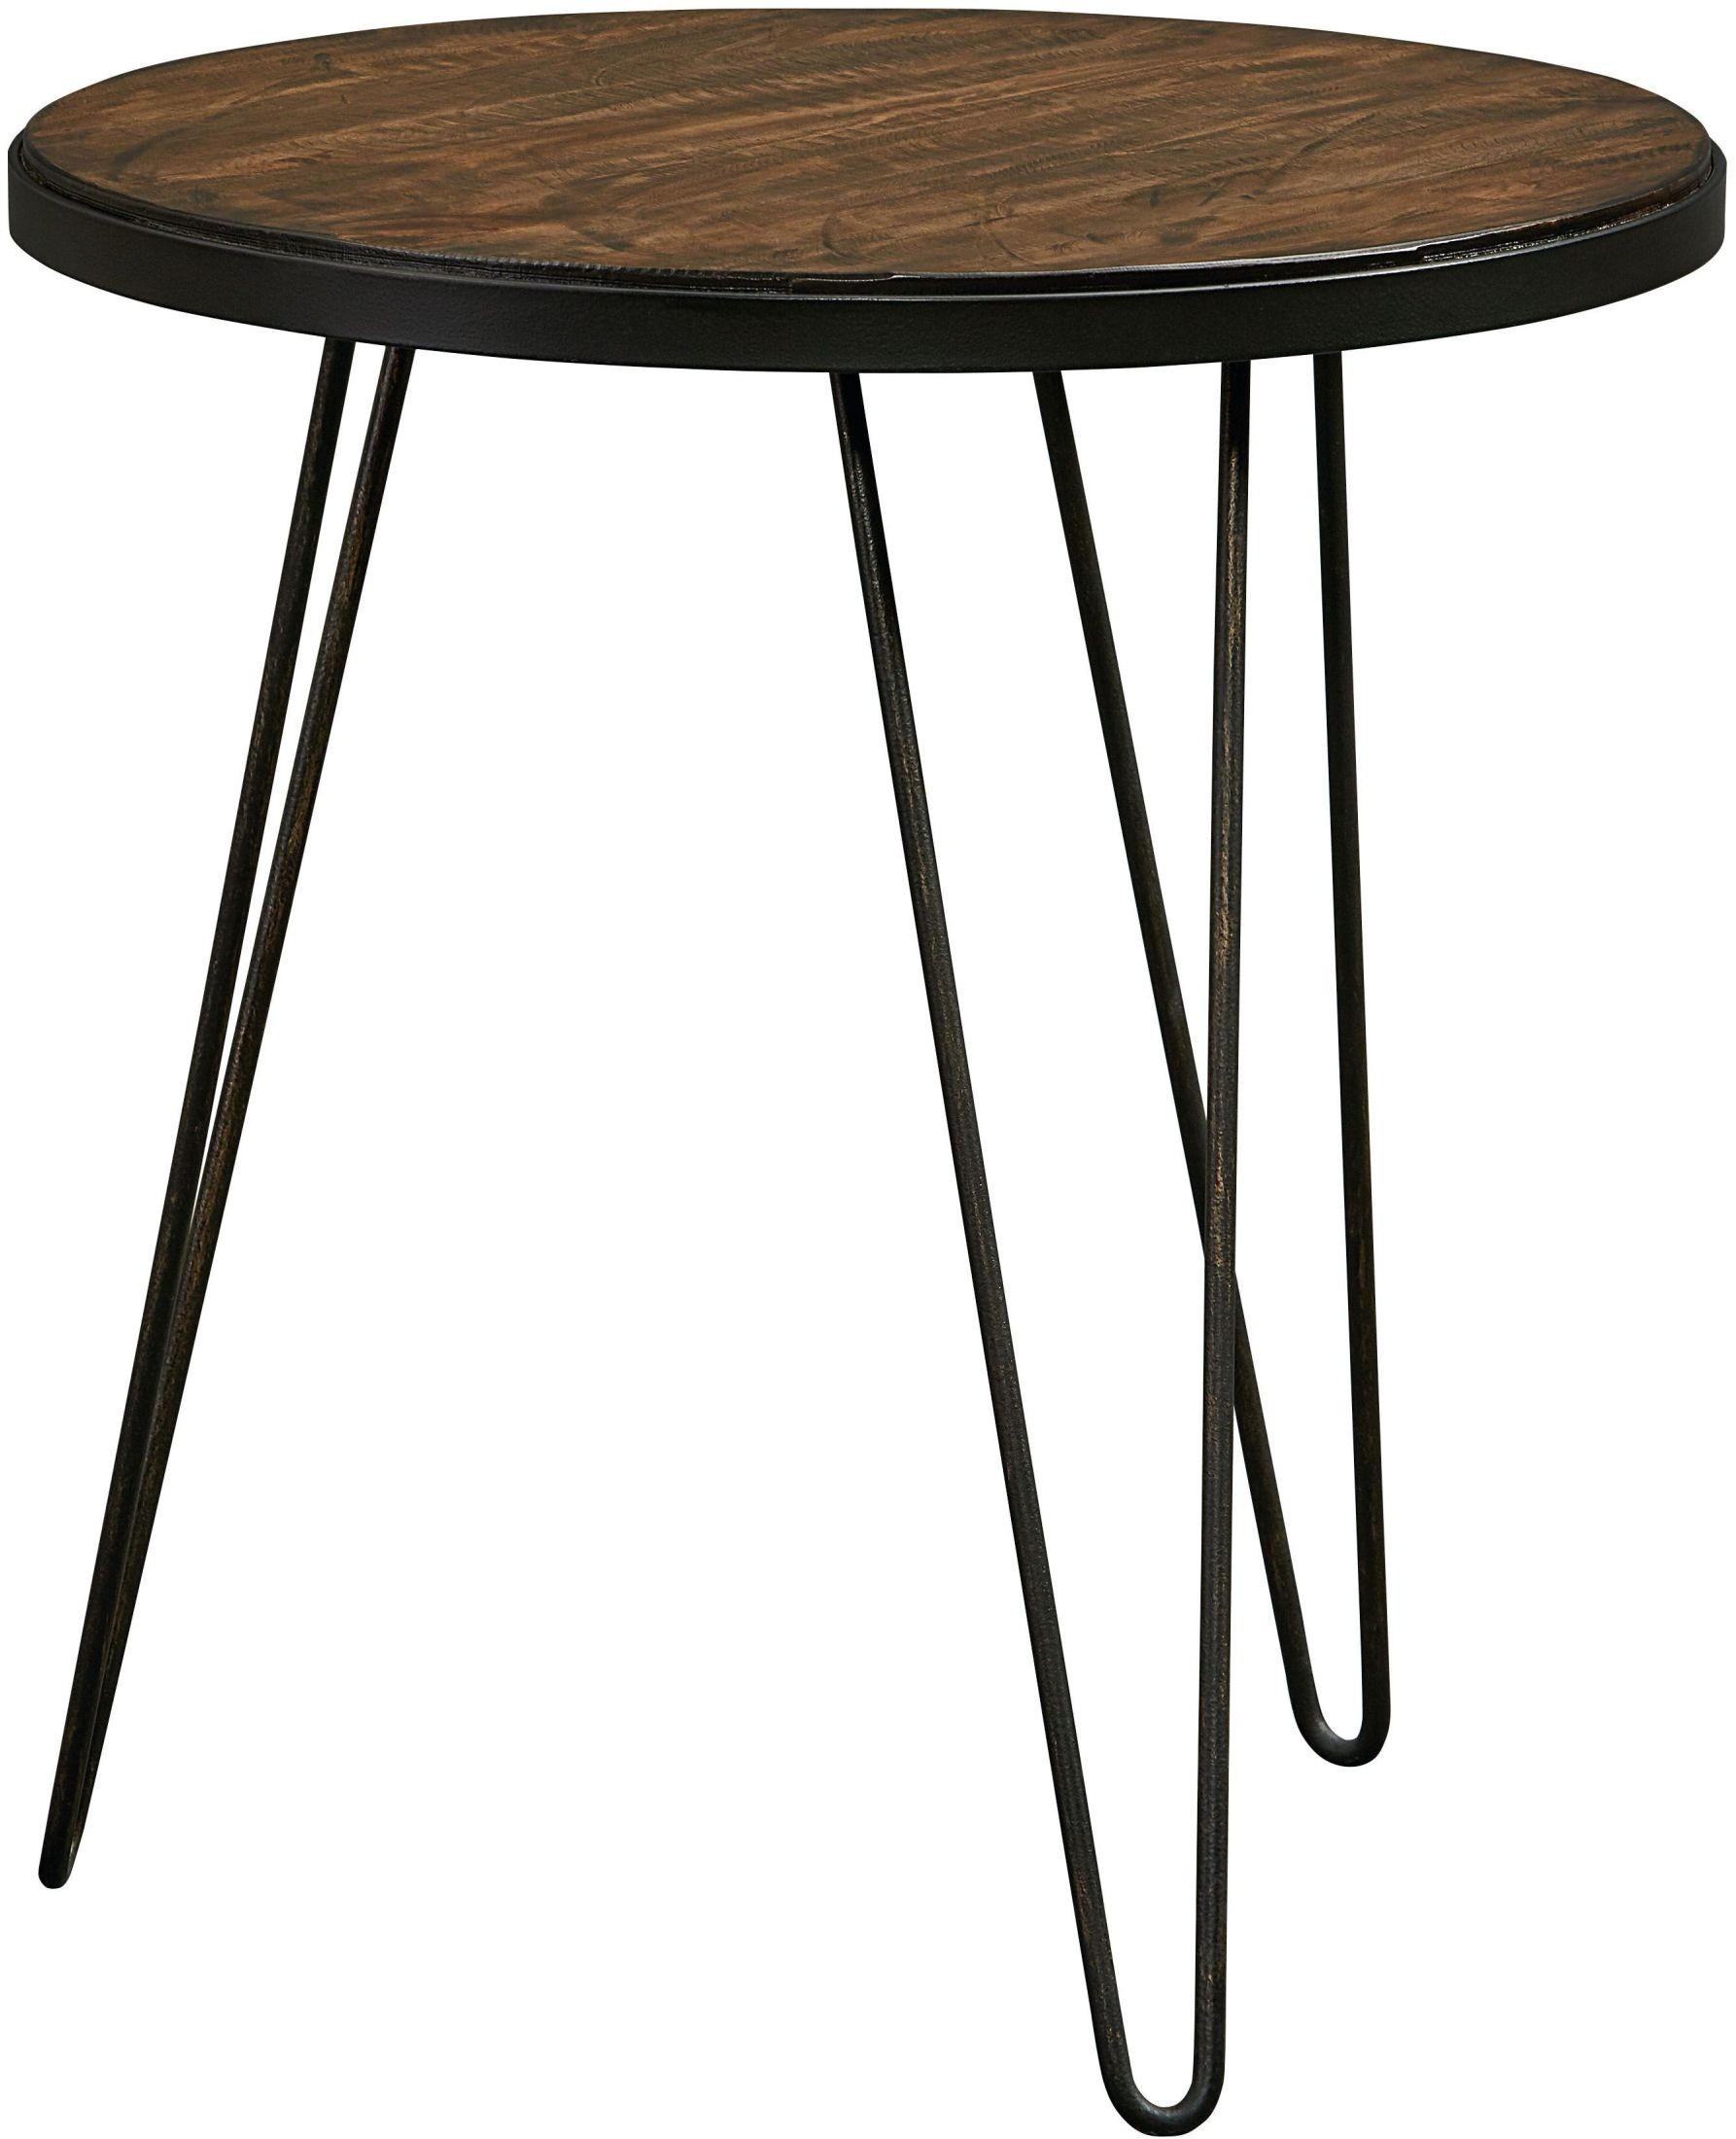 Paterno rustic brown end table from standard furniture